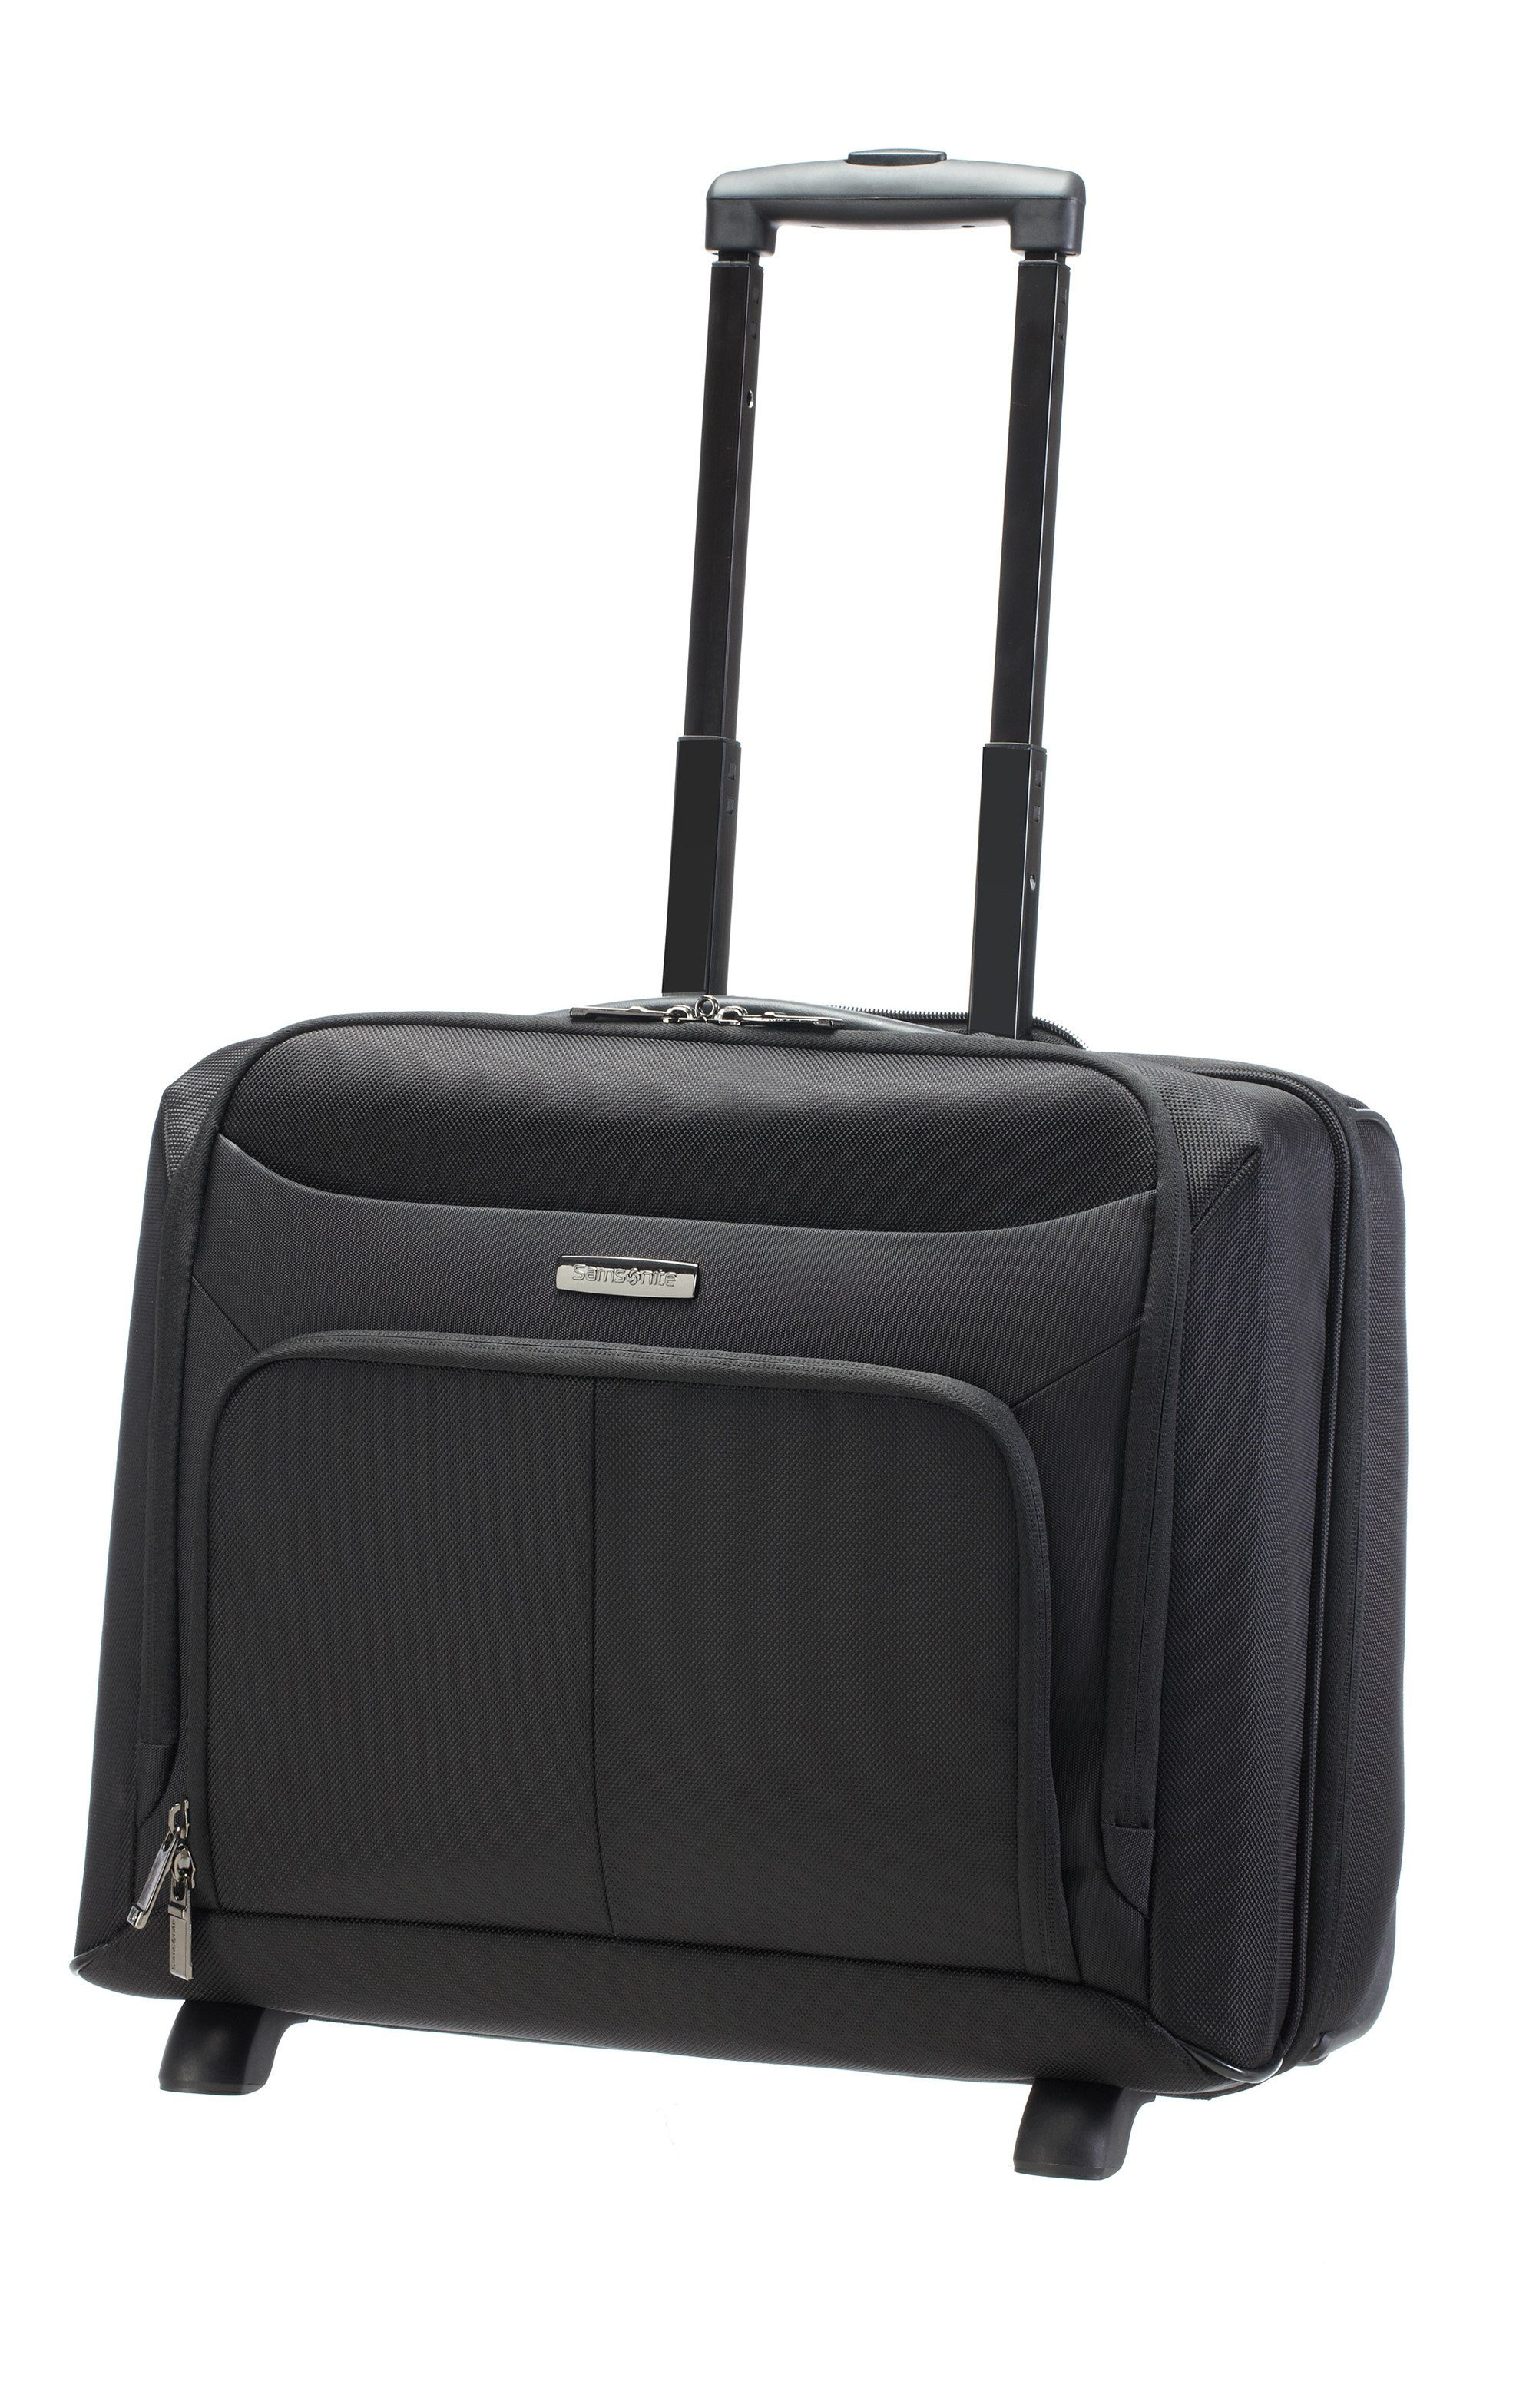 Samsonite Business-Trolley mit 2 Rollen und 15,6-Zoll Laptopfach, »Ergo-Biz Rolling Tote«